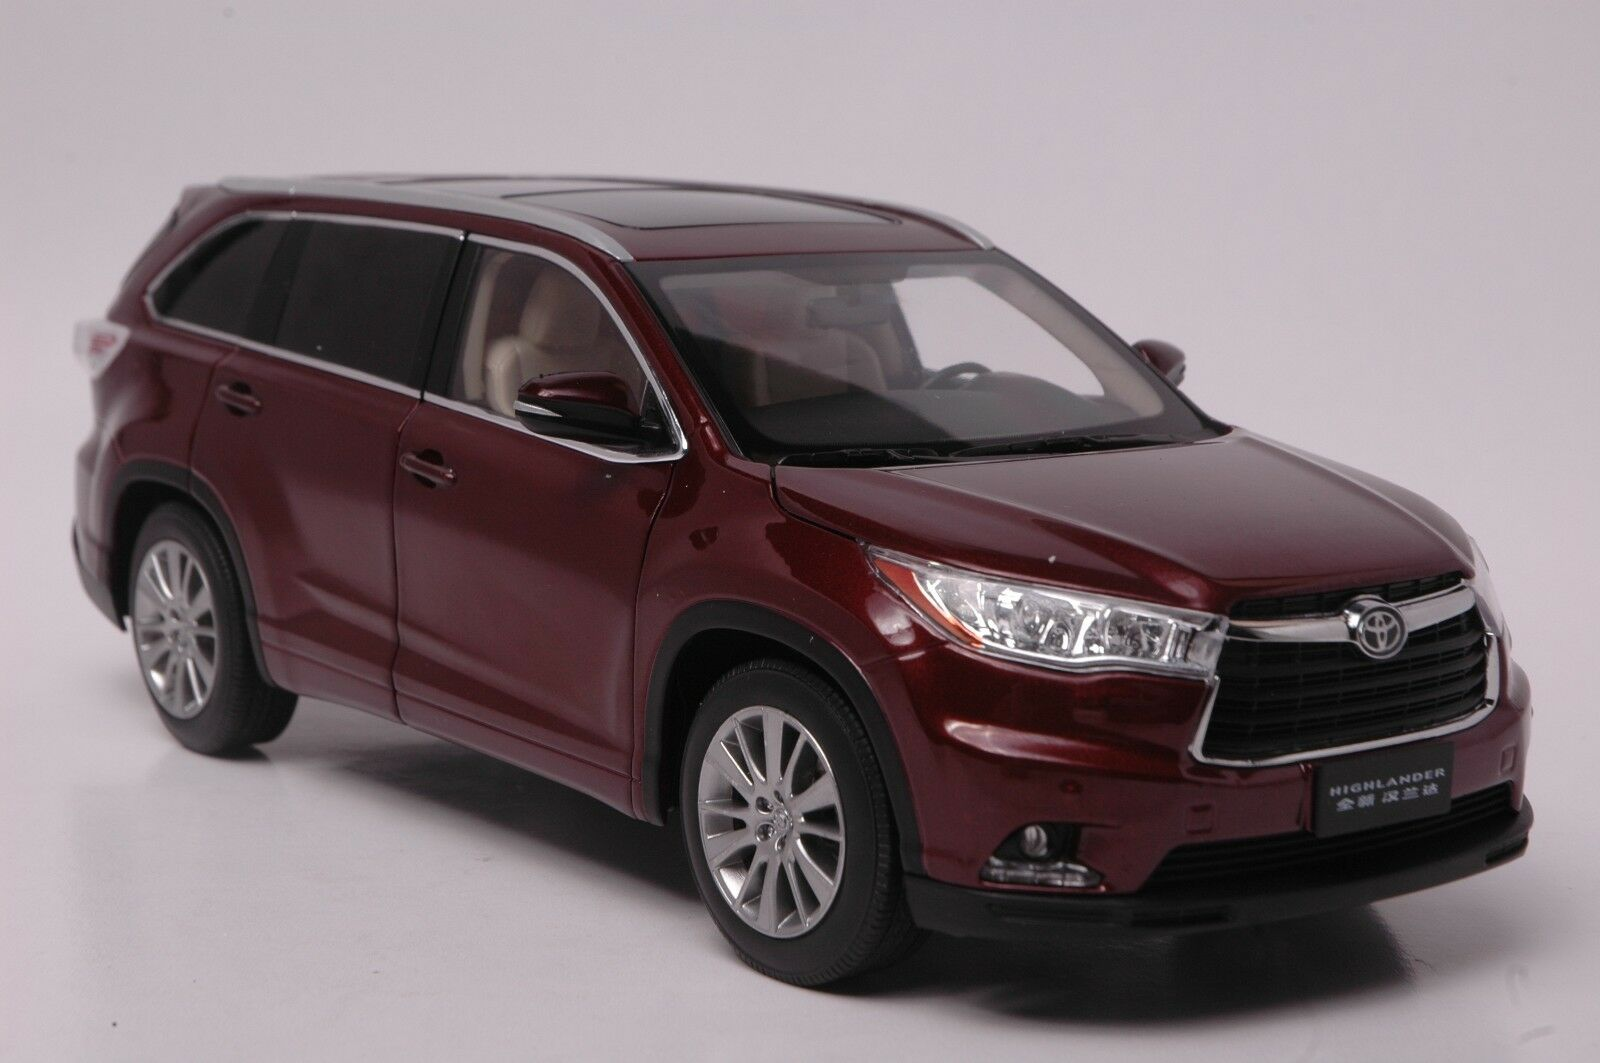 Toyota Highlander 2015 SUV model in scale 1 18 Red